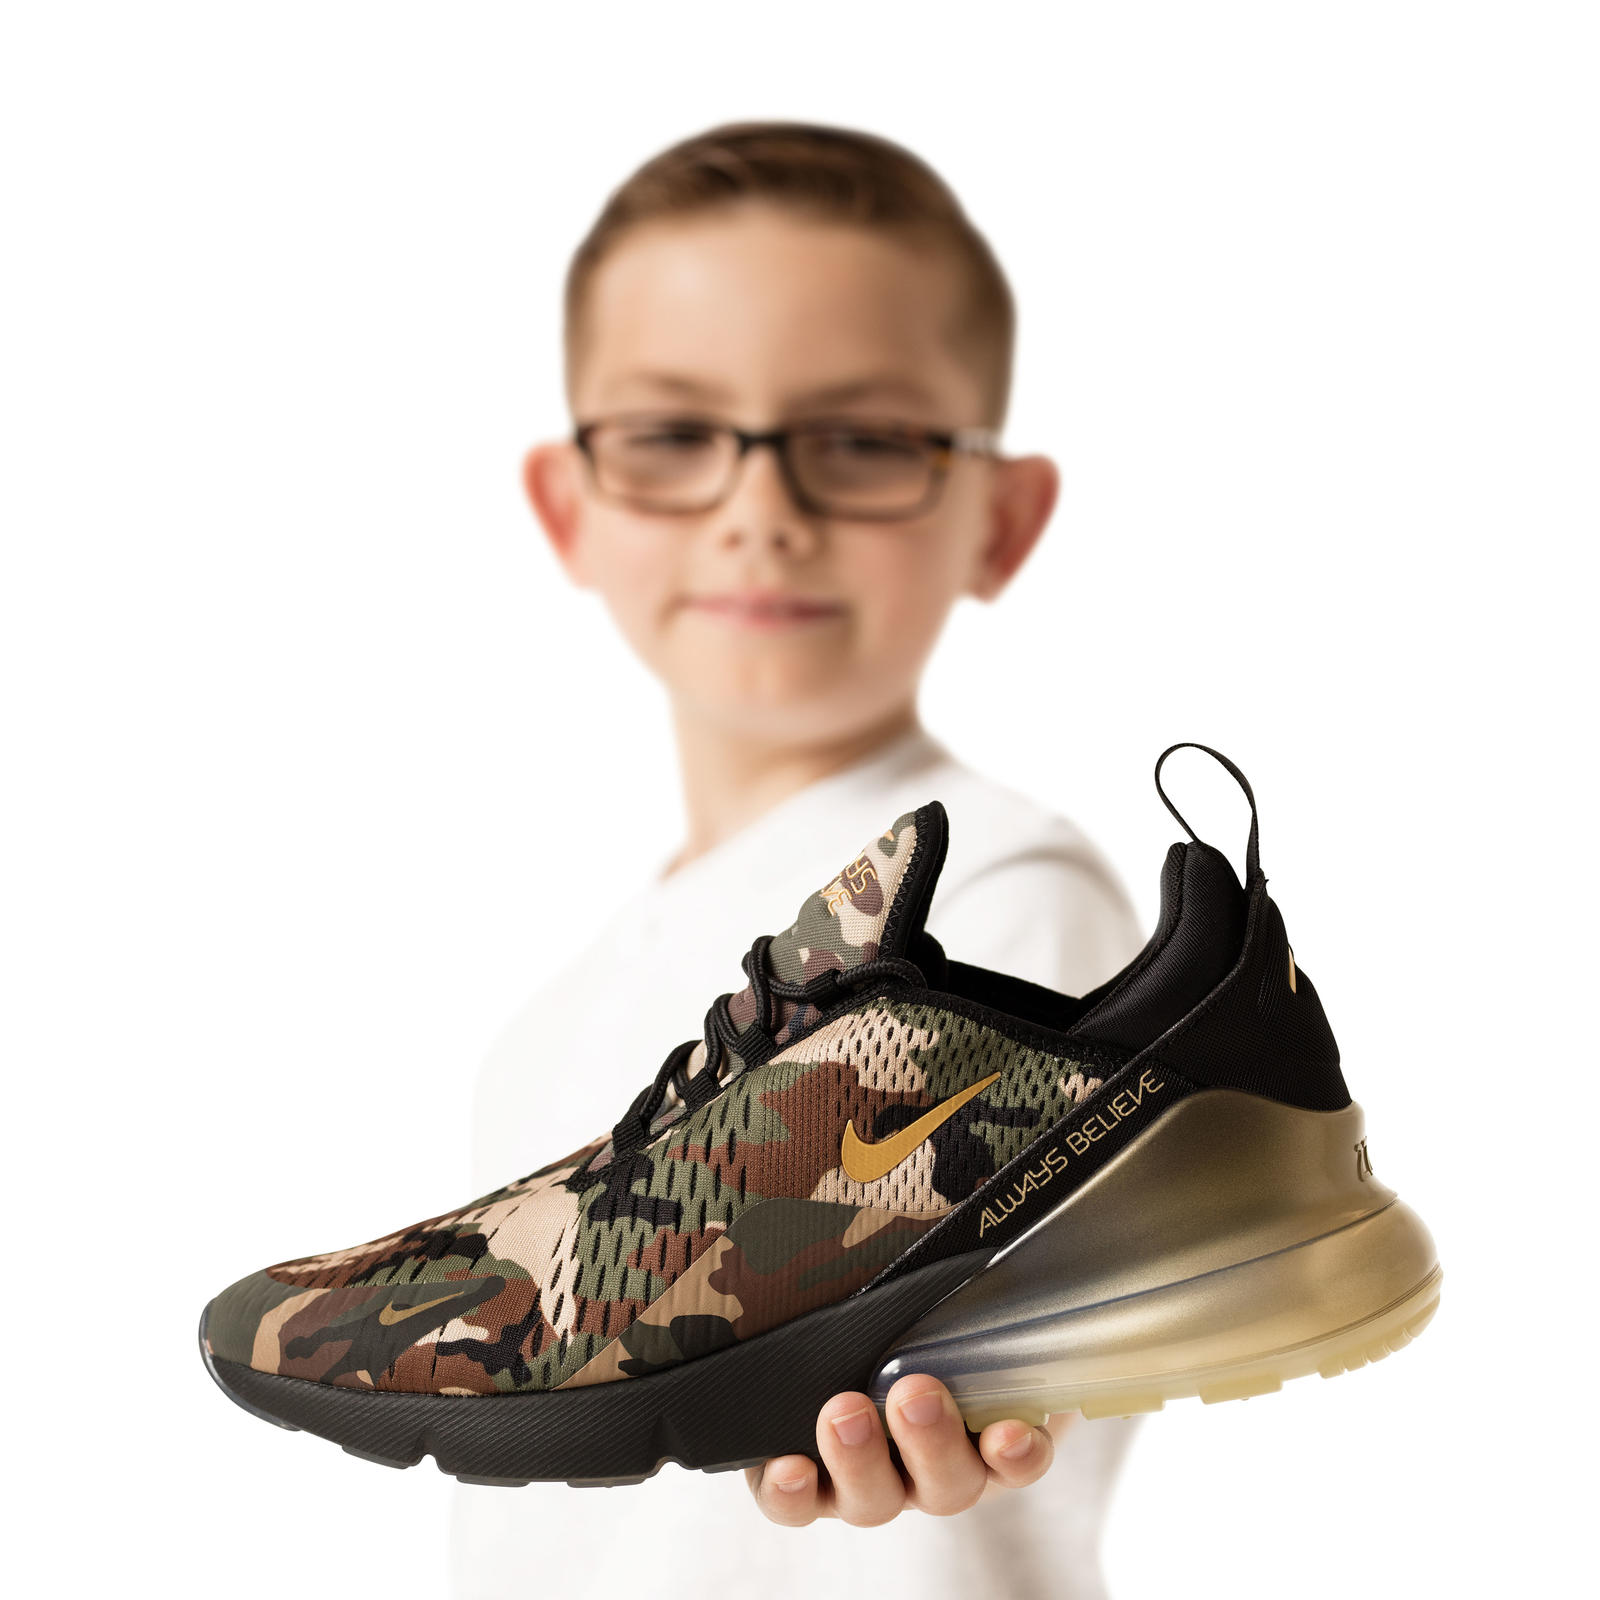 Nike x Doernbecher Freestyle 2018 Nike News